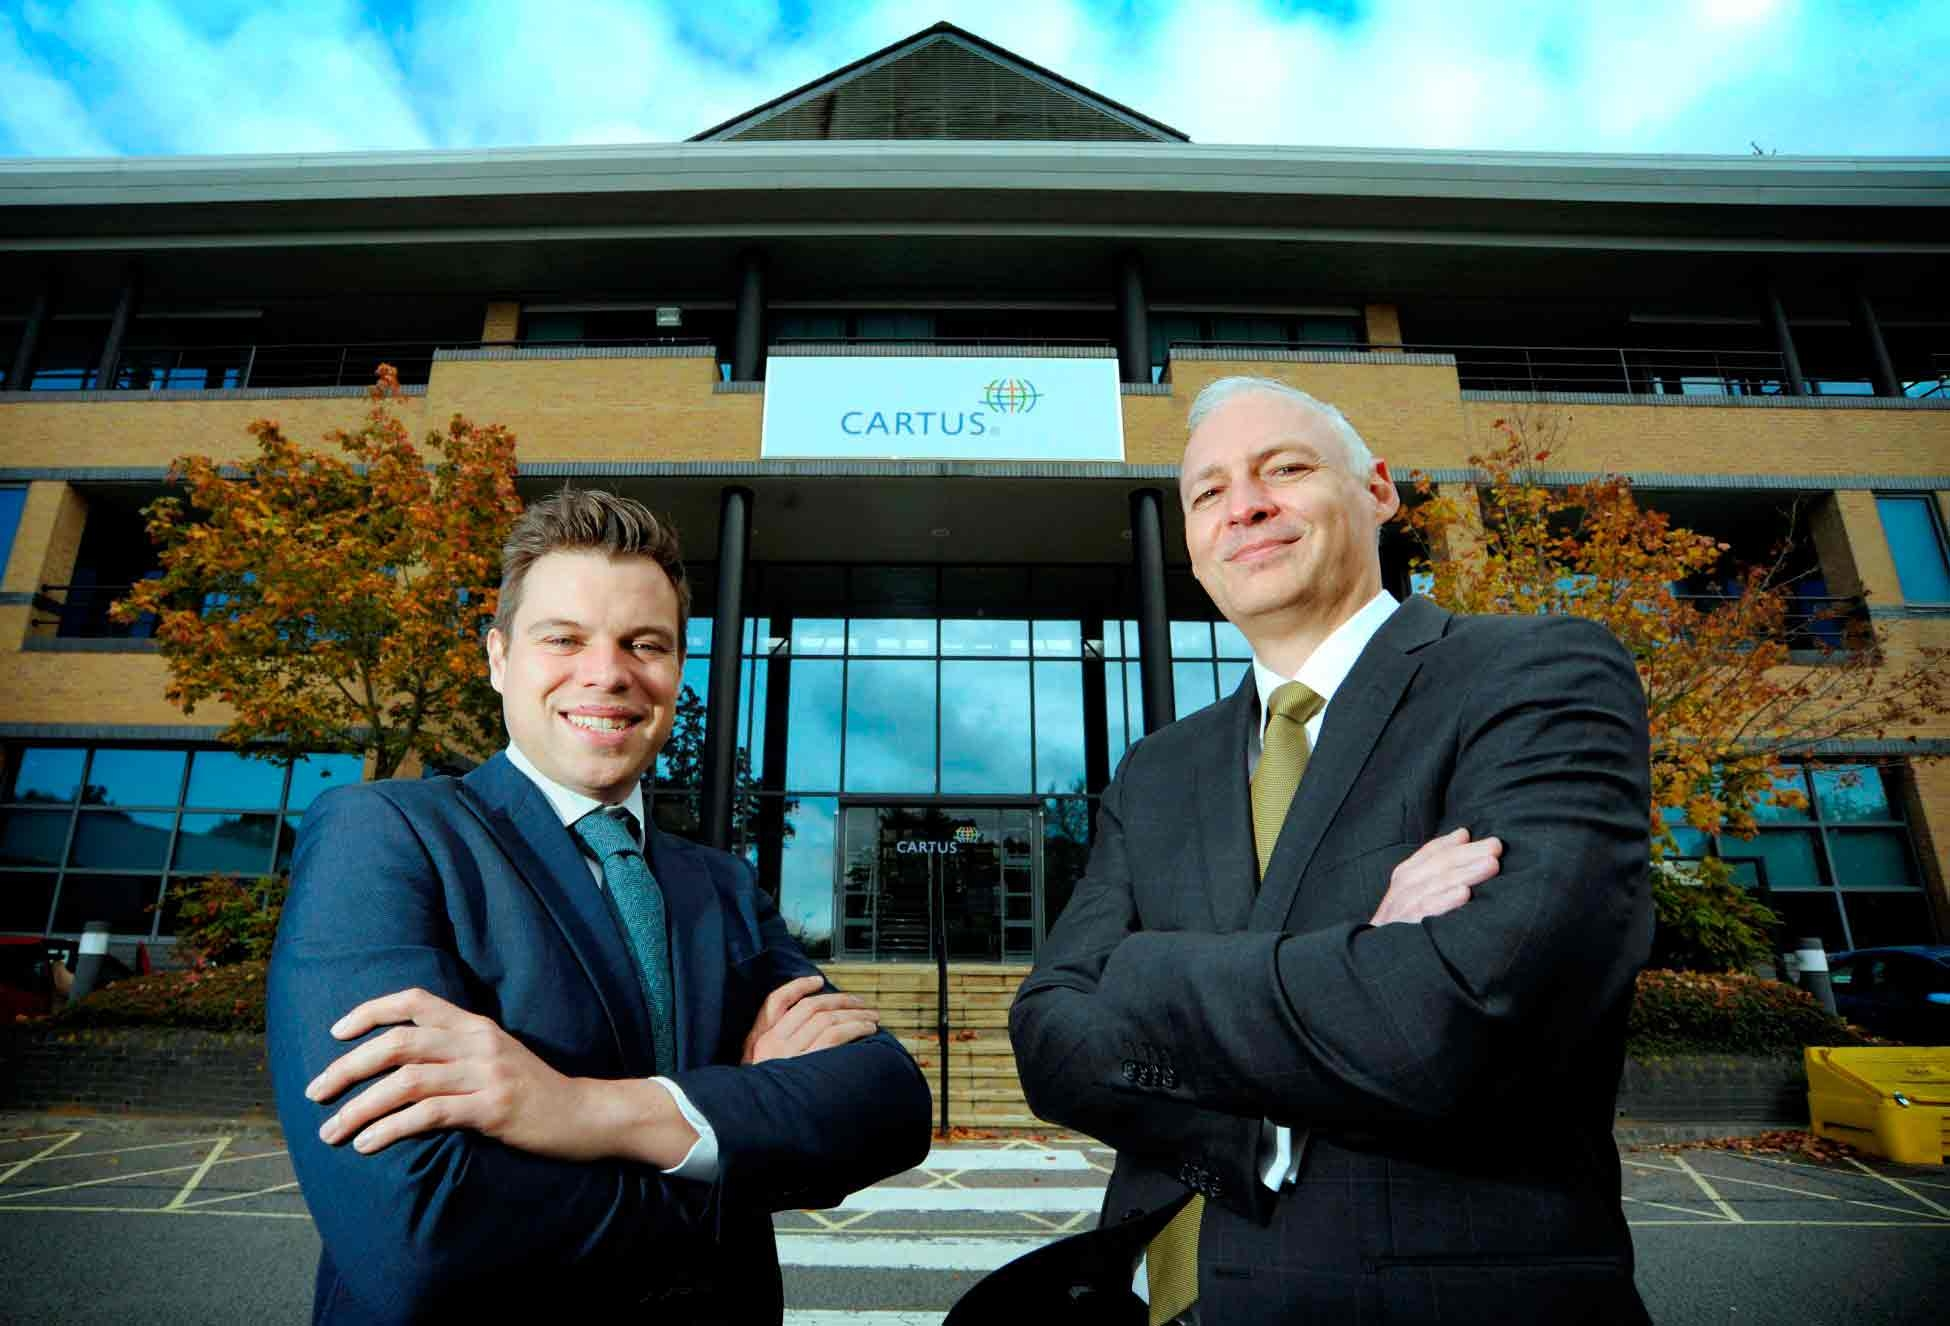 relocation business creating new jobs with £35m lloyds bank funding jobs in invoice finance